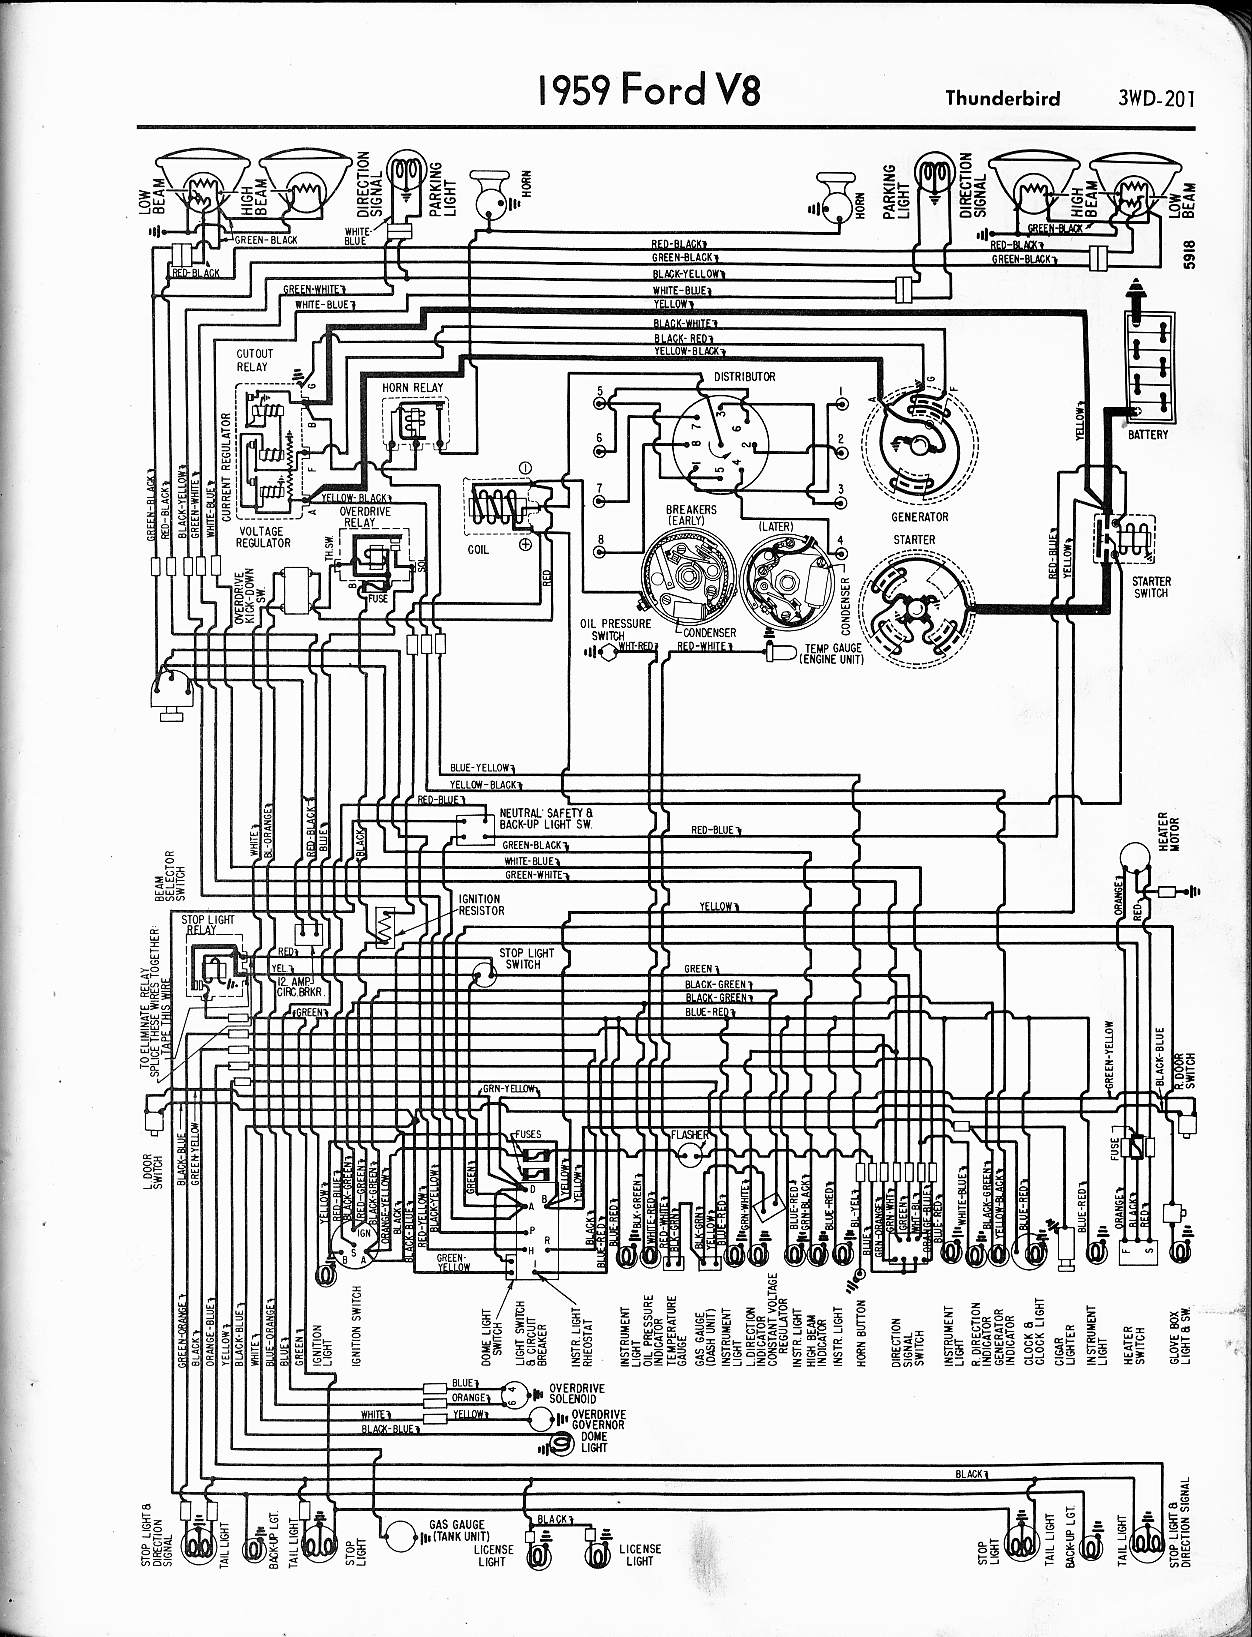 MWire5765 201 57 65 ford wiring diagrams Ford Schematics at gsmx.co